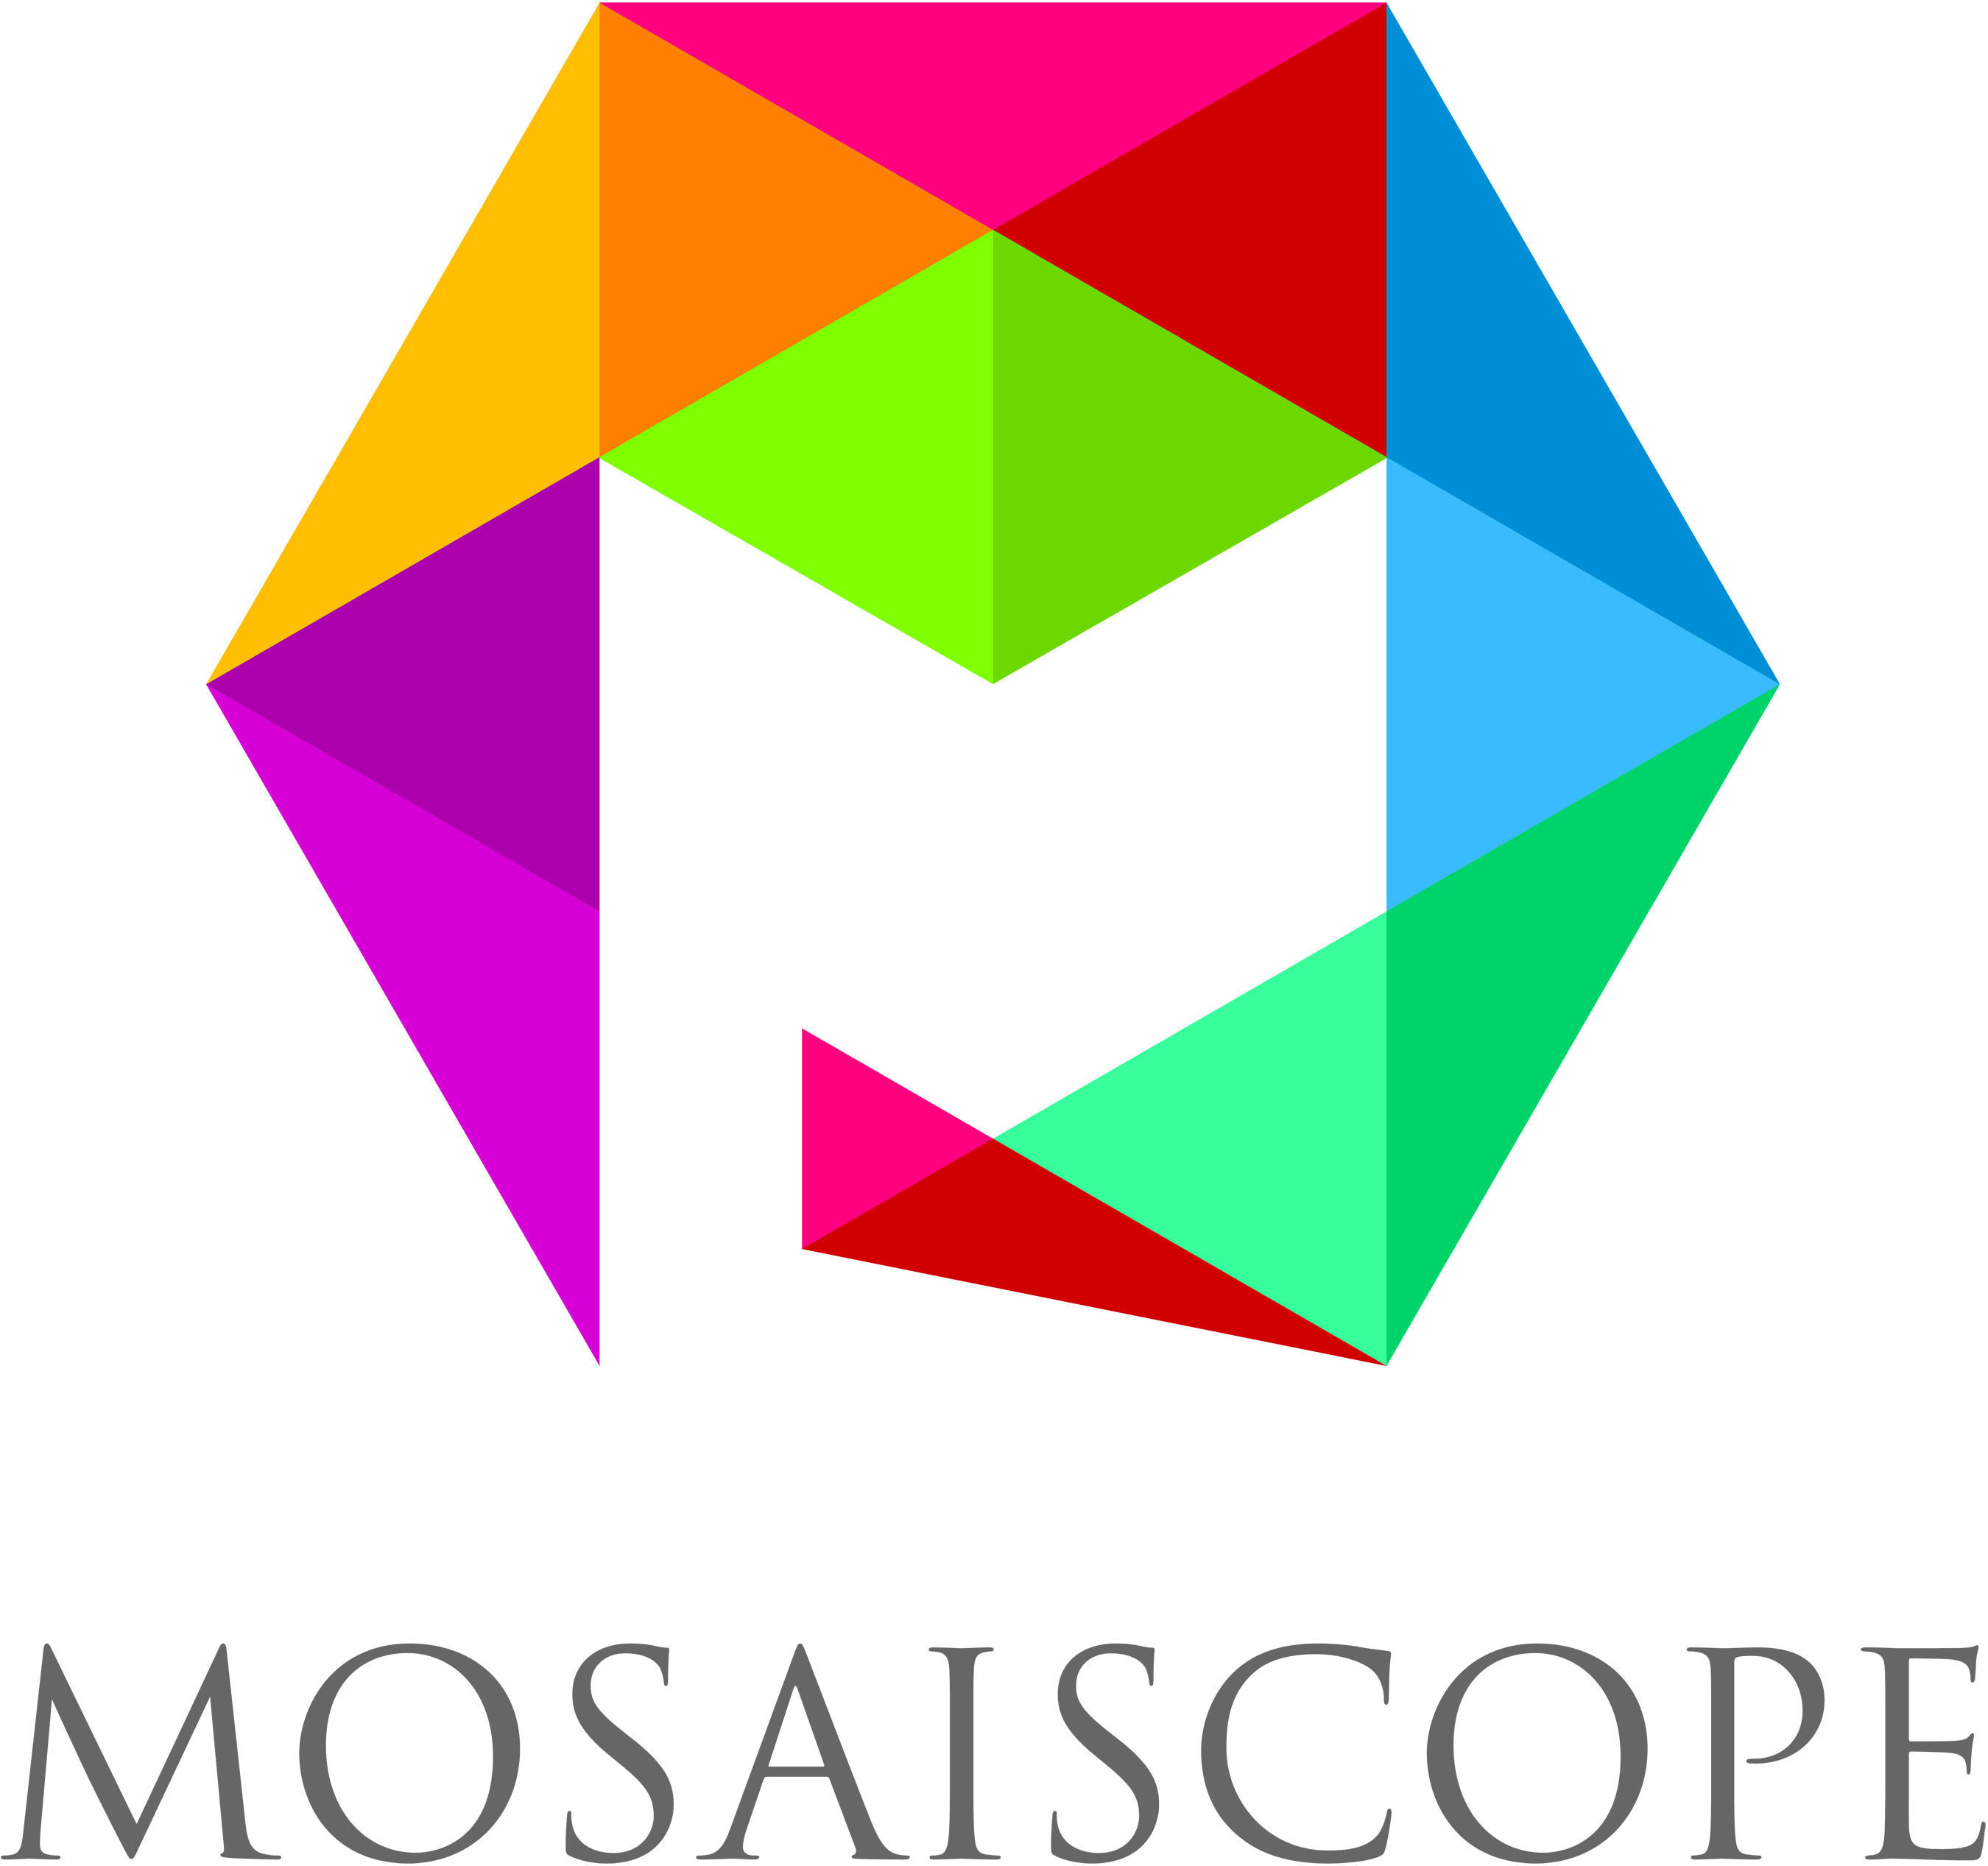 Mosaiscope is the next level news platform and the first product of Silicon Valley-based technology company, ...